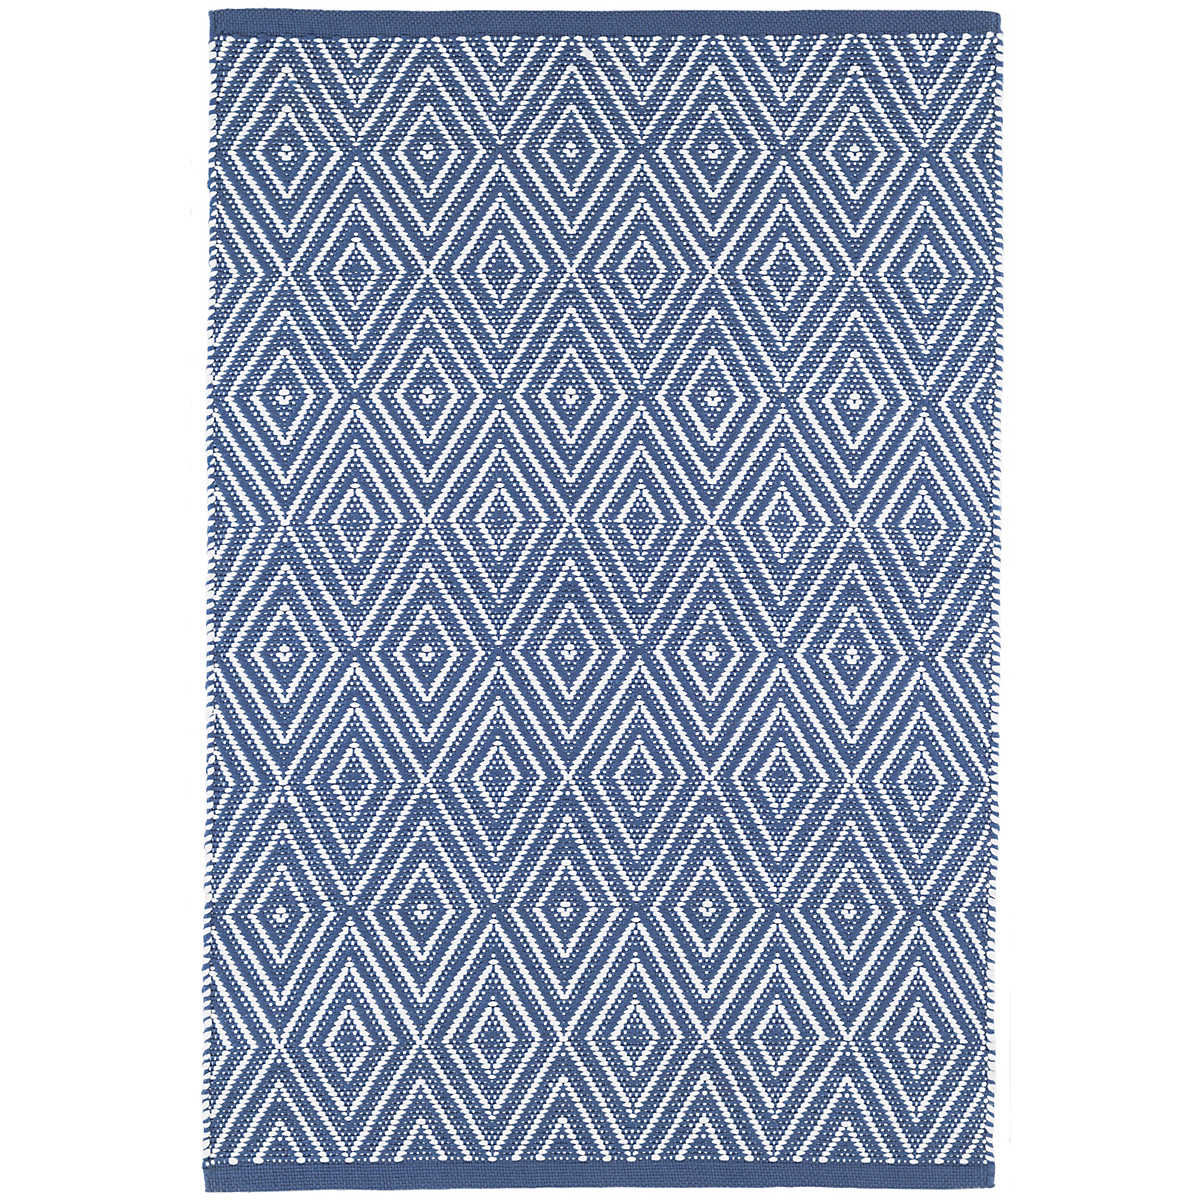 Diamond Denim/White Indoor/Outdoor Rug | Dash & Albert